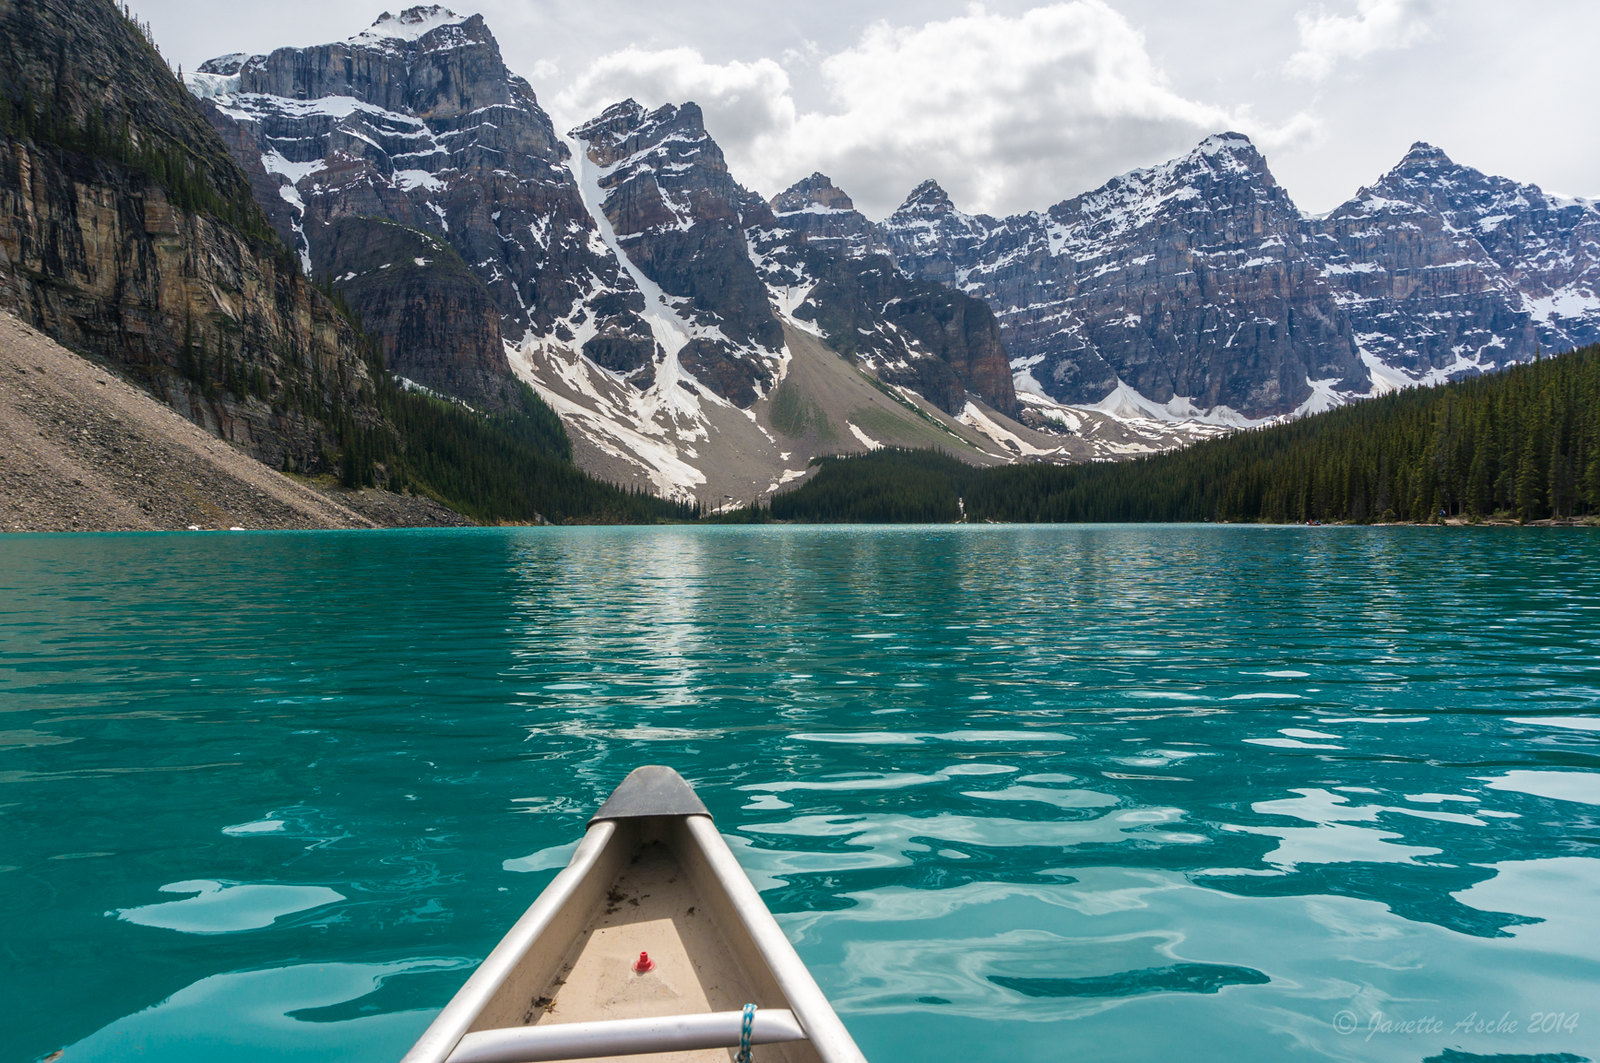 (x-post from -r-TrueNorthPictures) Canoeing on Moraine Lake, Alberta, Canada [1600x1063] by Janette Asche